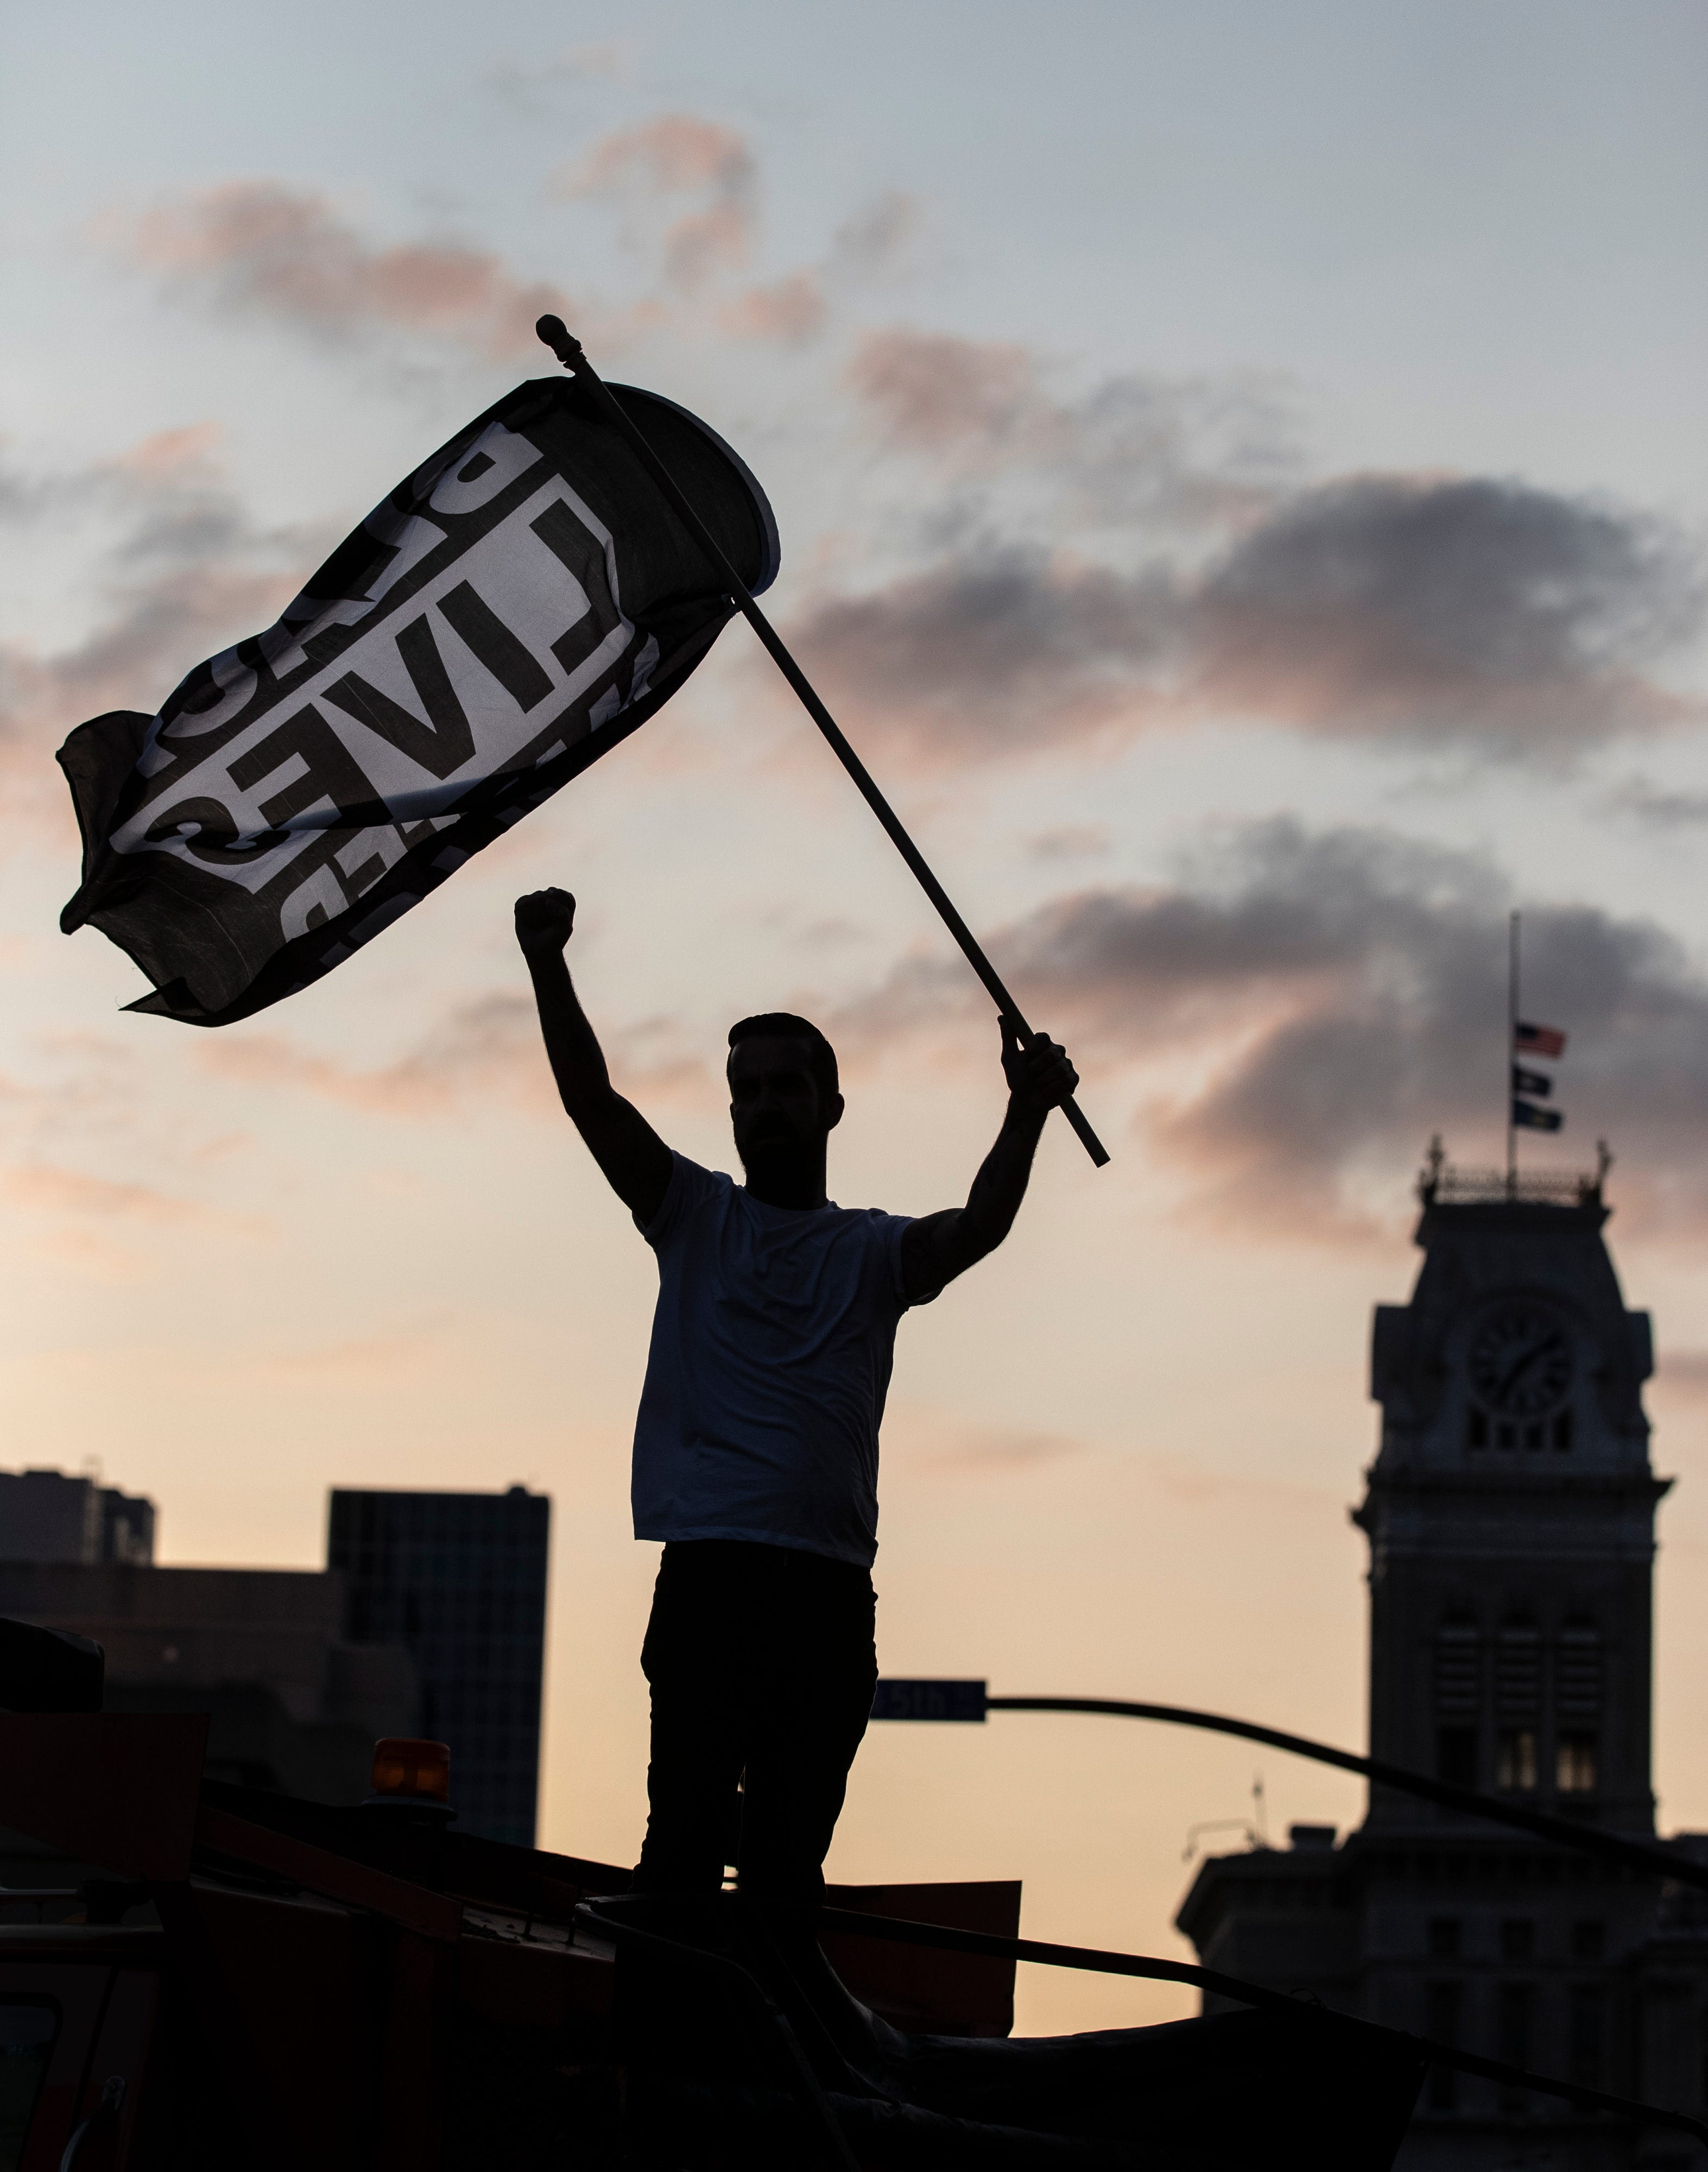 Dylan O'Donoghue stood atop a barricade at Fifth and Jefferson Streets in Louisville, Kentucky and waved a Black Lives Matter flag. Protesters marched through the streets for another night, demonstrating for justice for the late Breonna Taylor. Sept. 26, 2020.